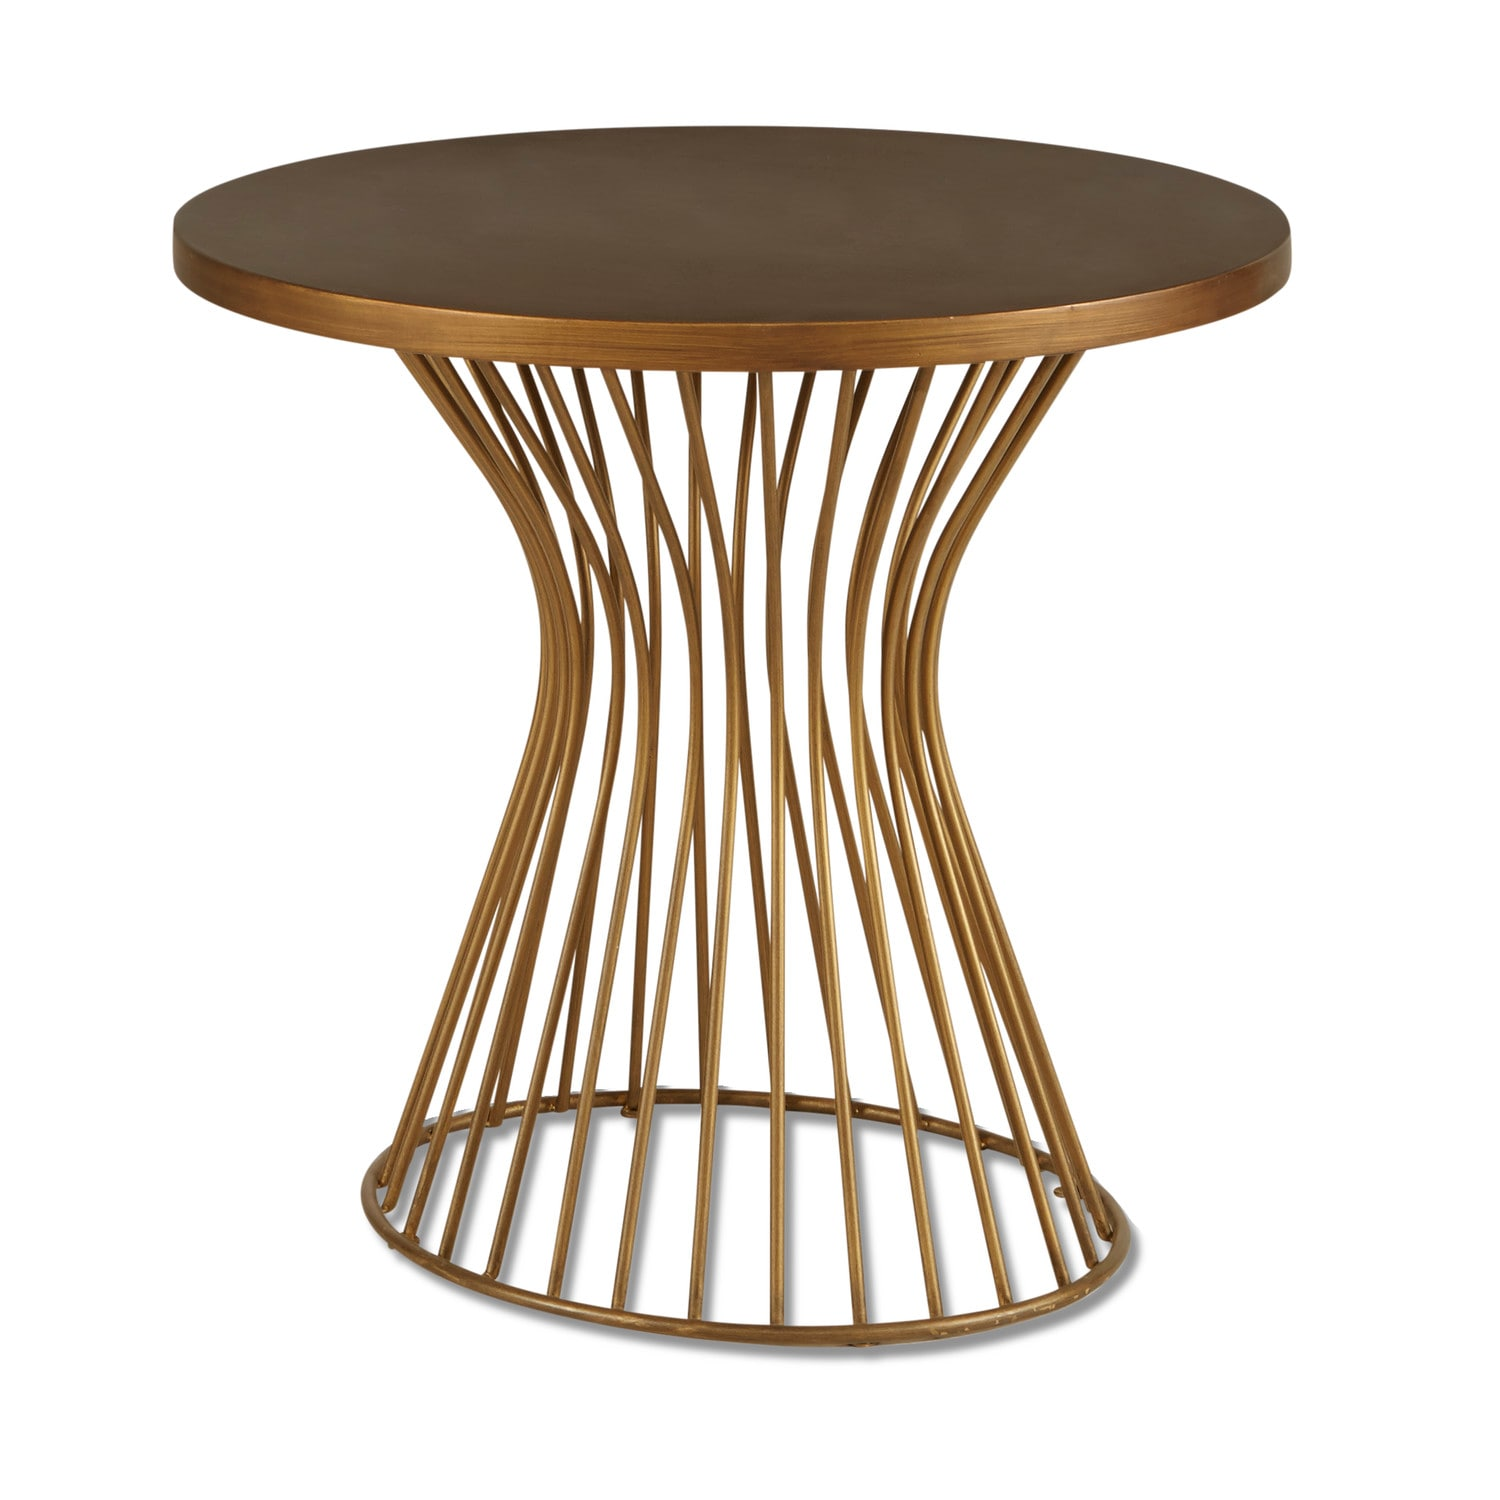 Accent and occasional furniture mercer end table bronze hover touch to zoom click to change image